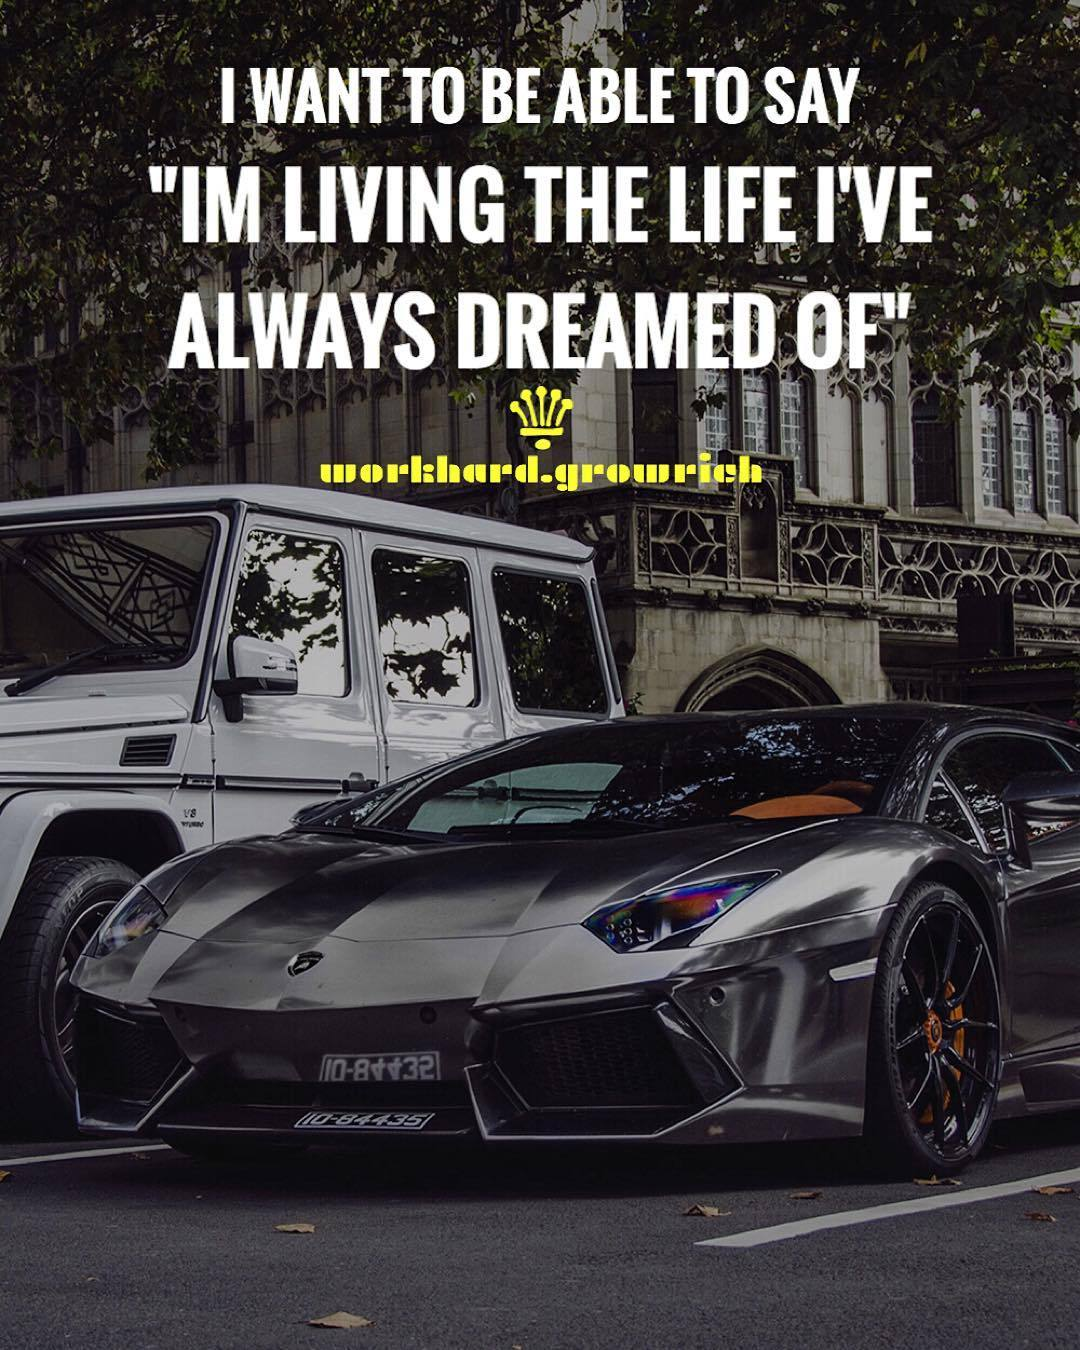 Billionaire Quotes Wallpaper Work Hard Grow Rich I Want To Be Able To Say Im Living